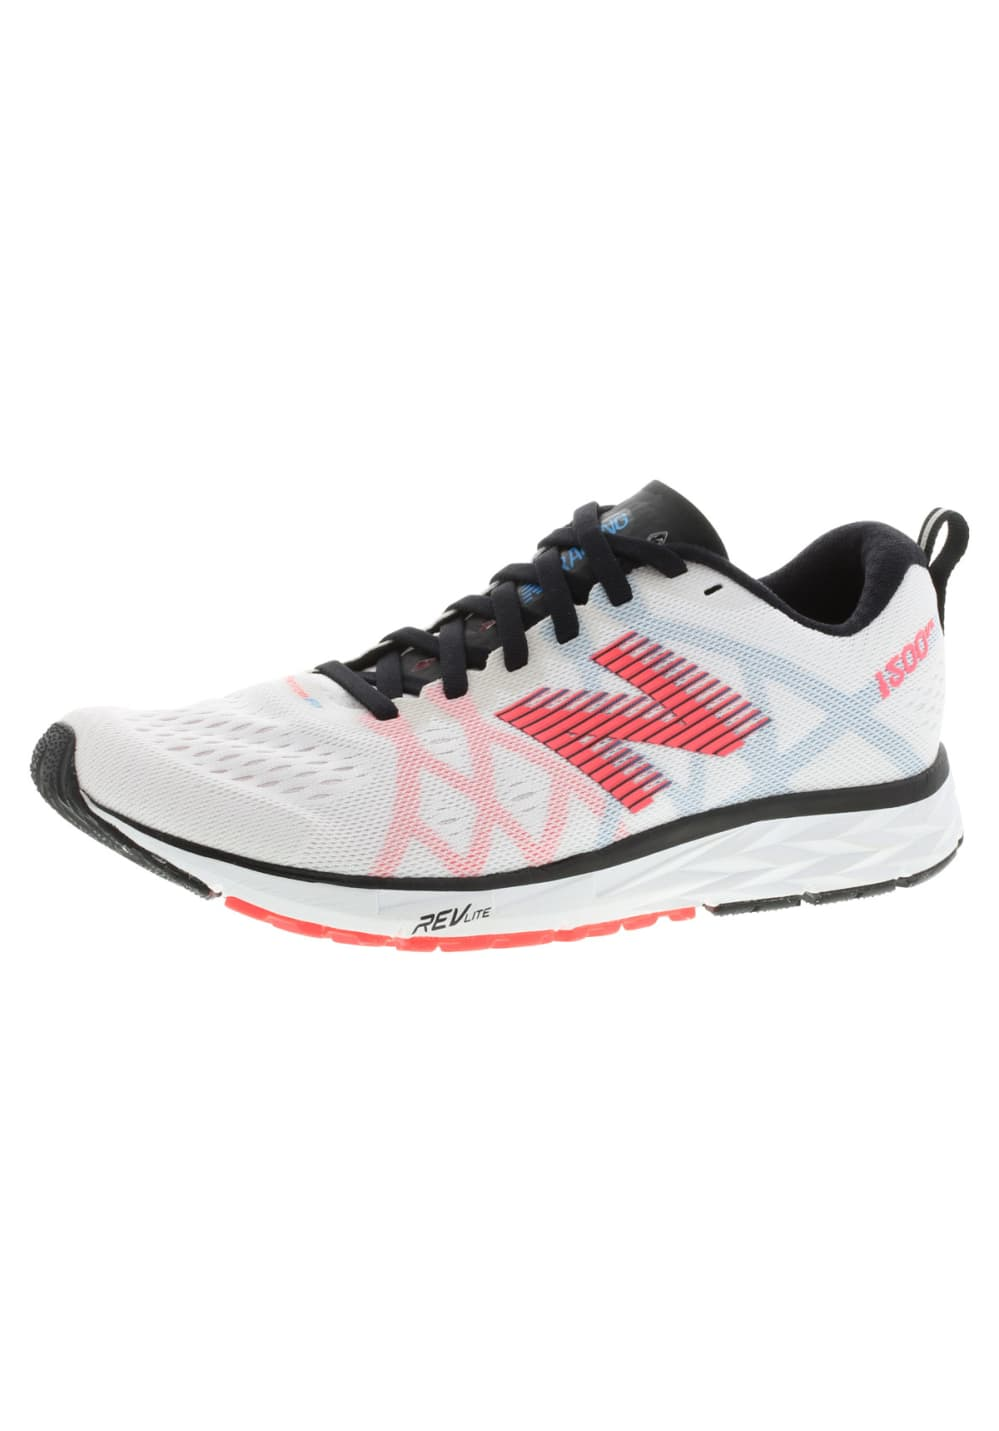 Running New Femme V4 Blanc Chaussures Pour 1500 Balance WoeBrCdx